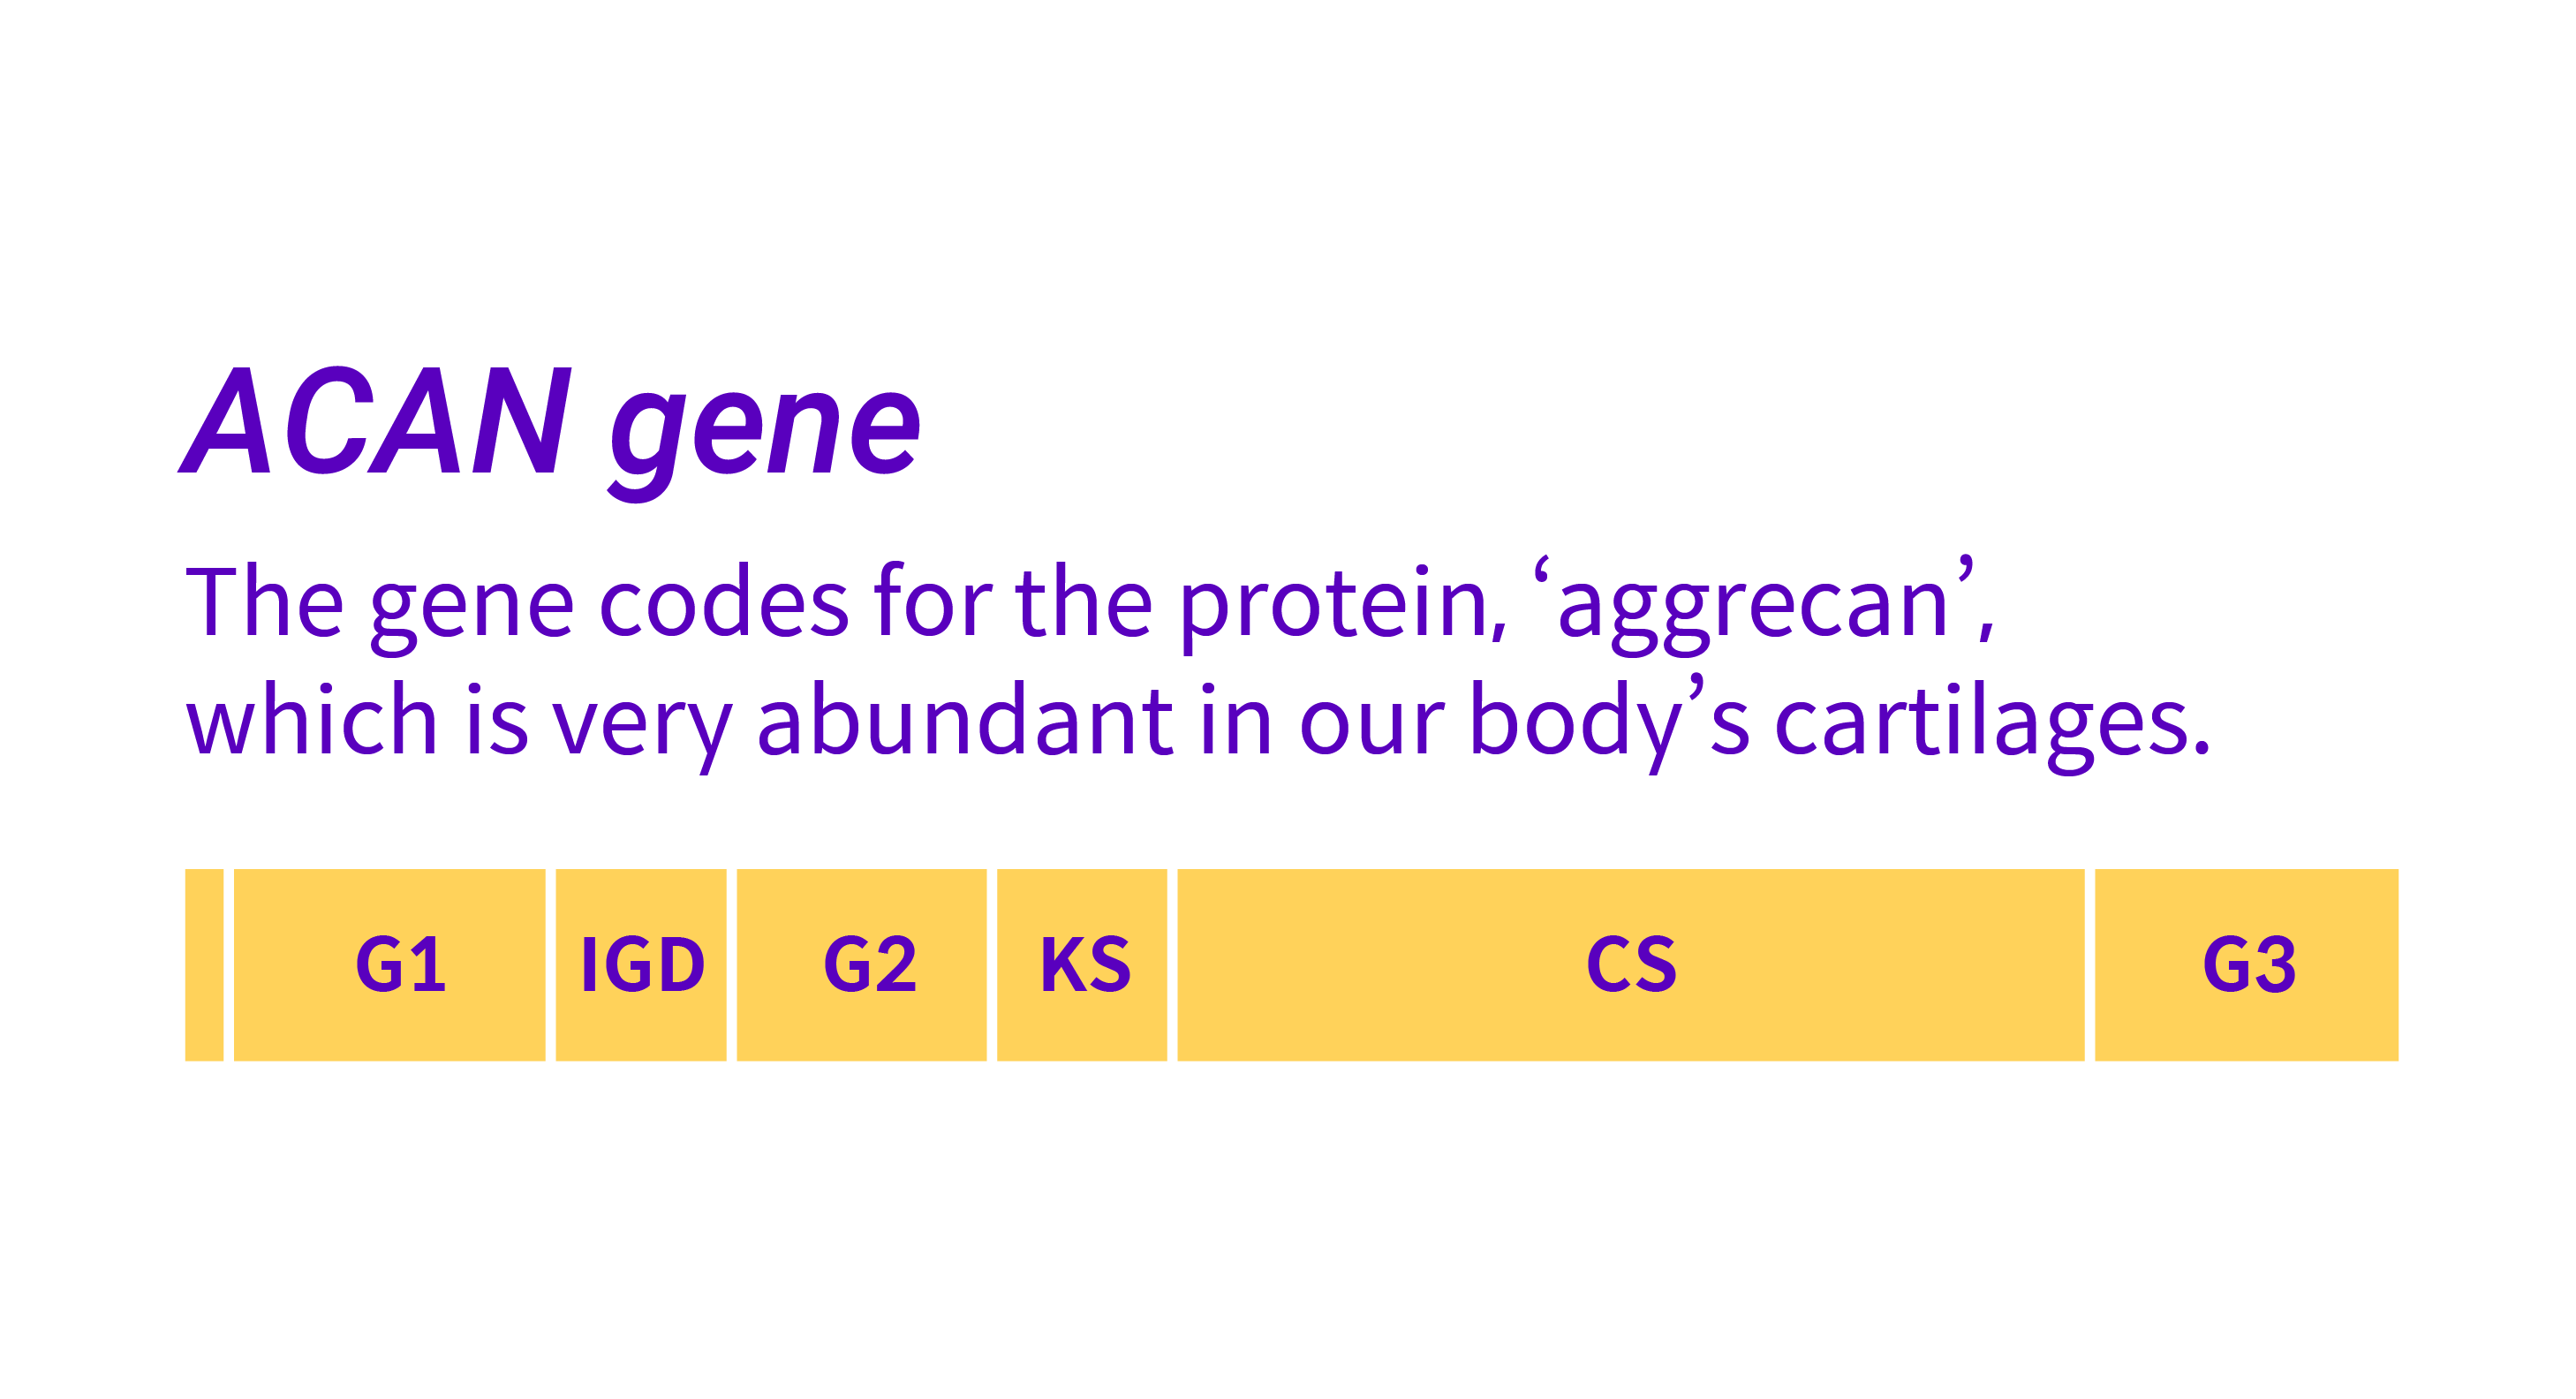 The ACAN gene is divided into various sections. The gene codes for the protein aggrecan, which is very abundant in our body's cartilages.